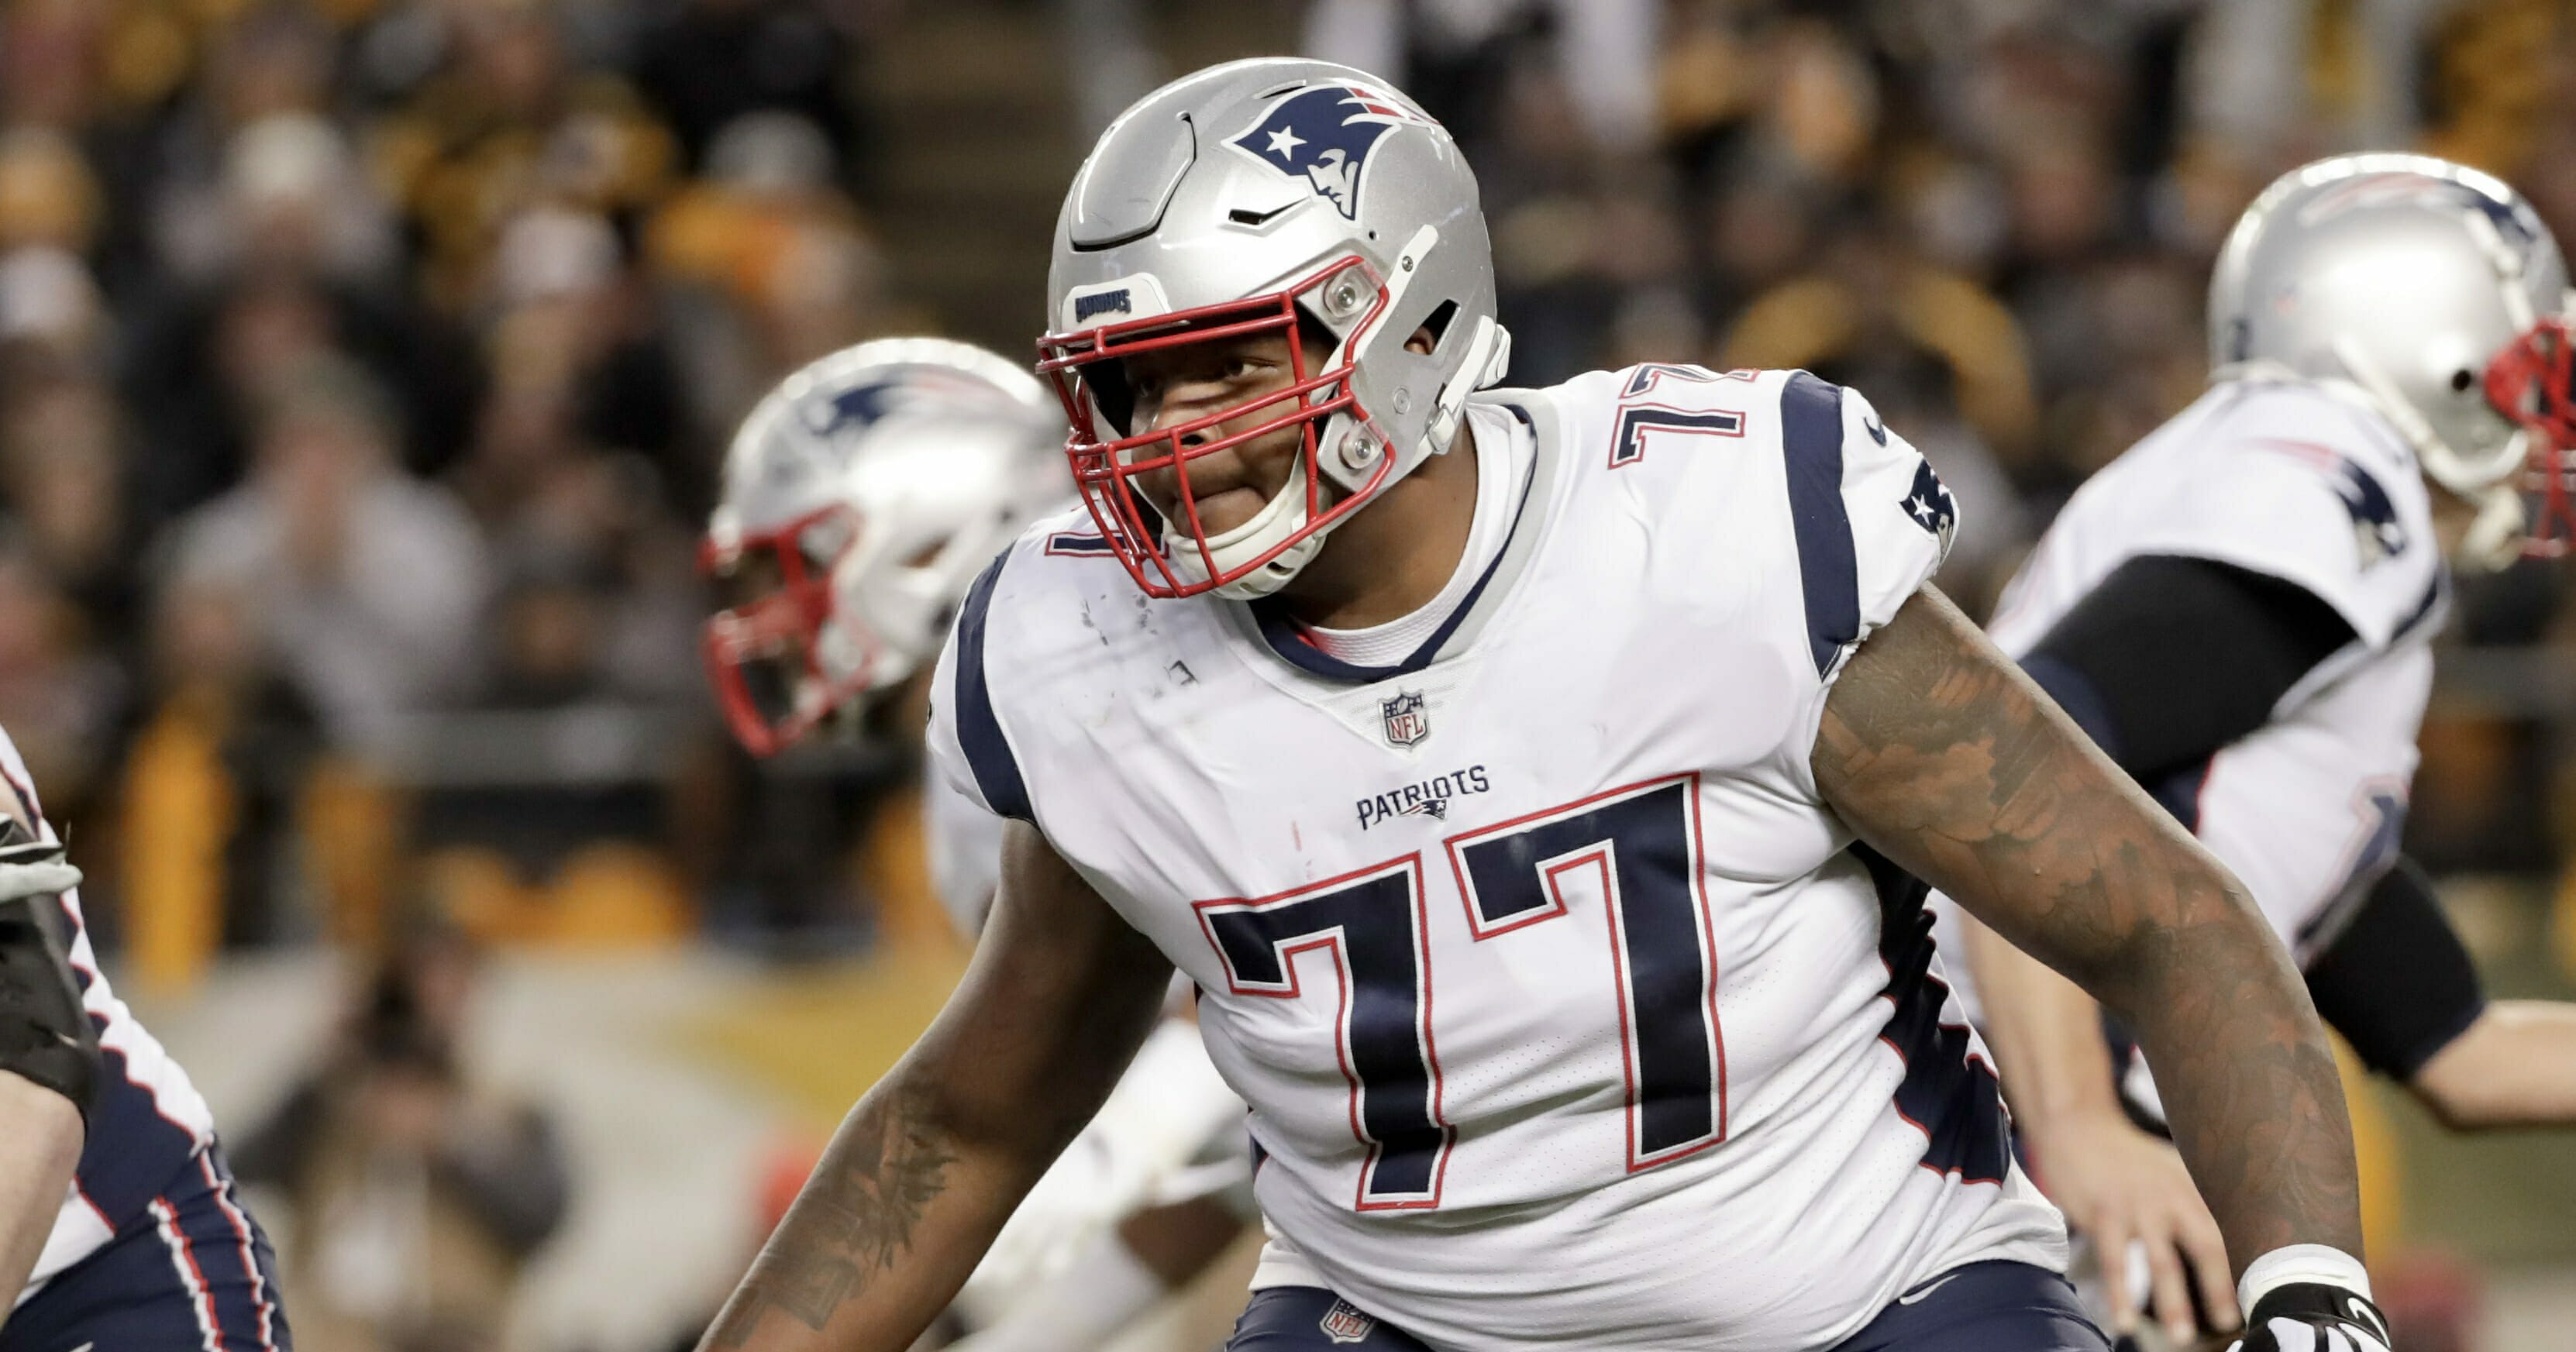 In this Dec. 16, 2018, file photo, New England Patriots offensive tackle Trent Brown plays against the Pittsburgh Steelers in an NFL football game, in Pittsburgh.